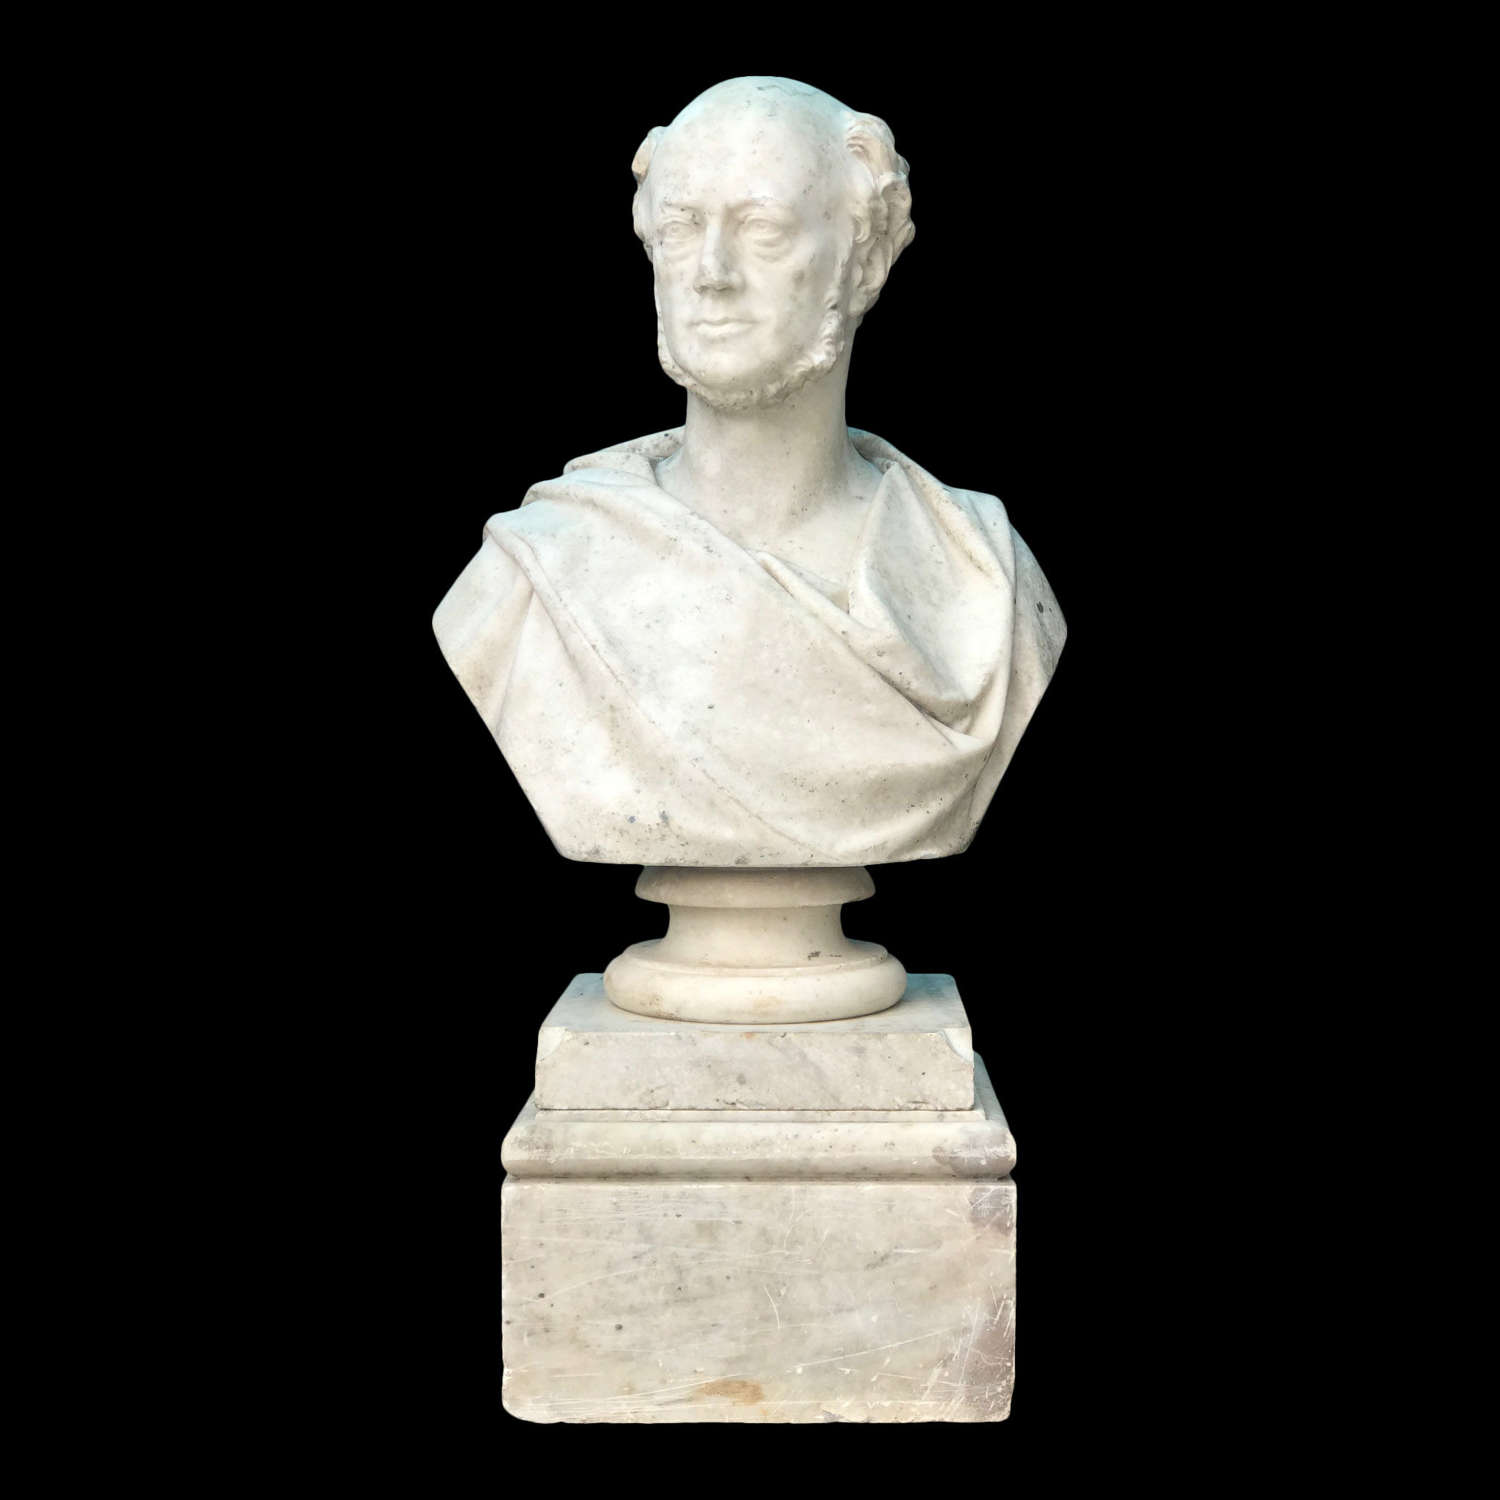 A large 19th Century Marble bust of a Gentleman